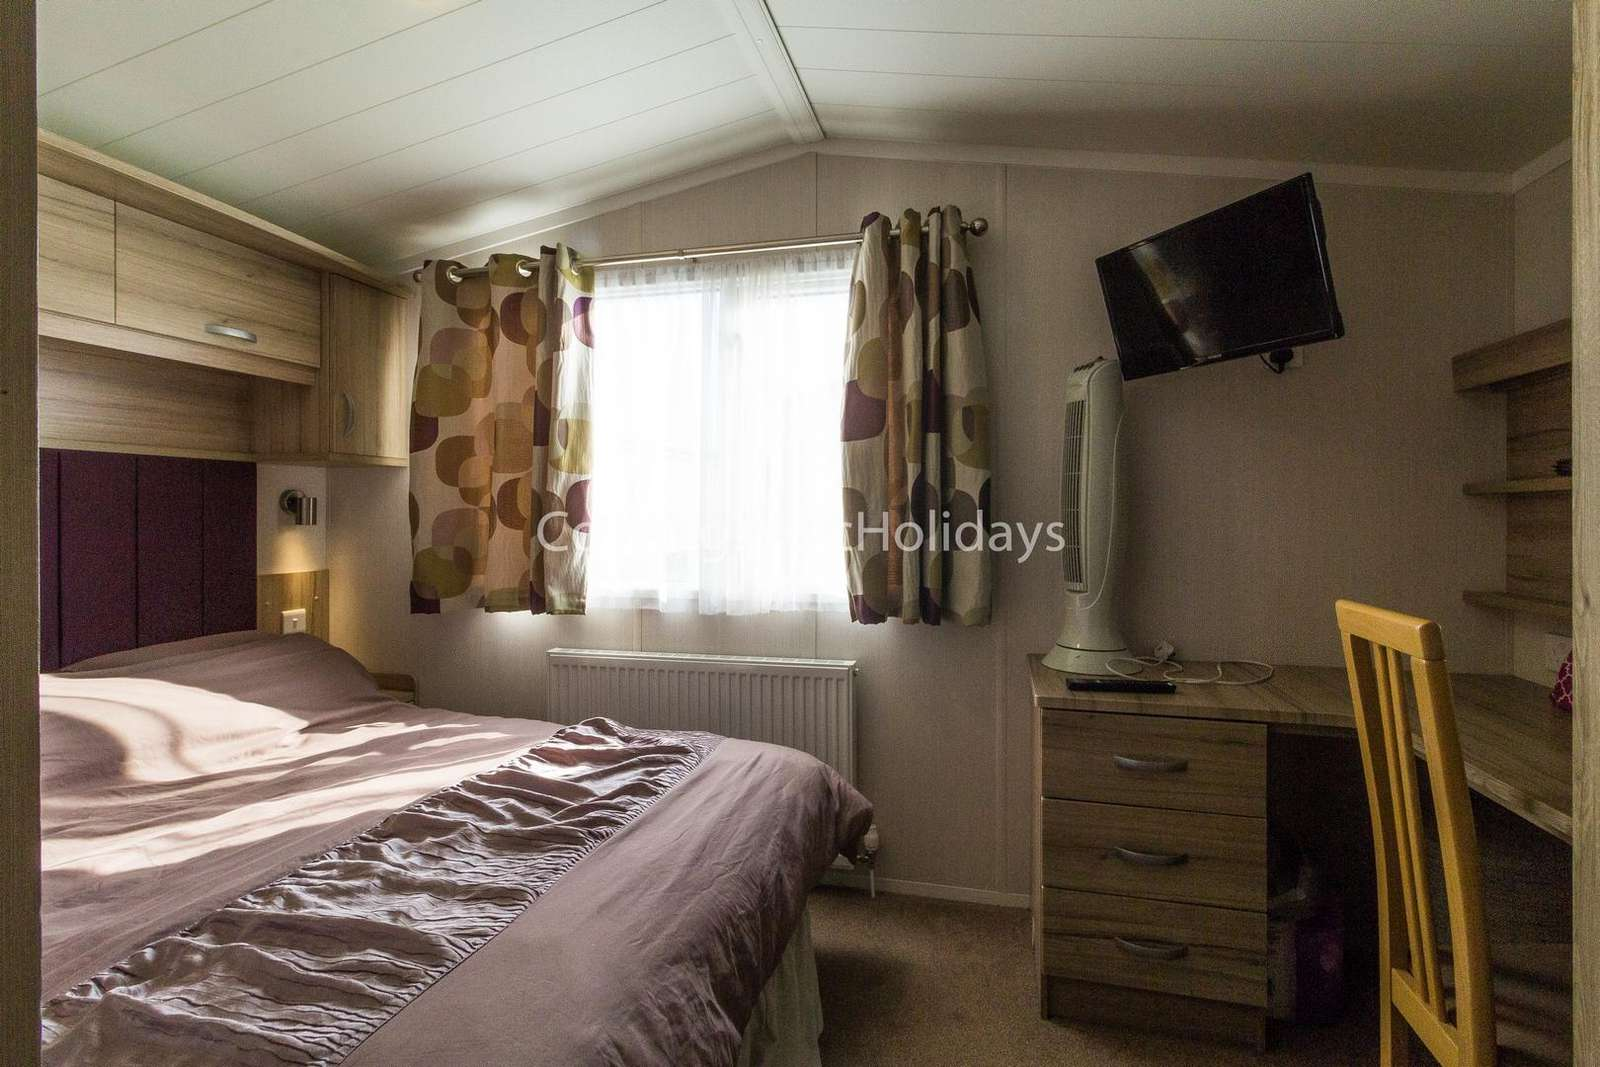 Caister Haven Holiday Park, in Norfolk